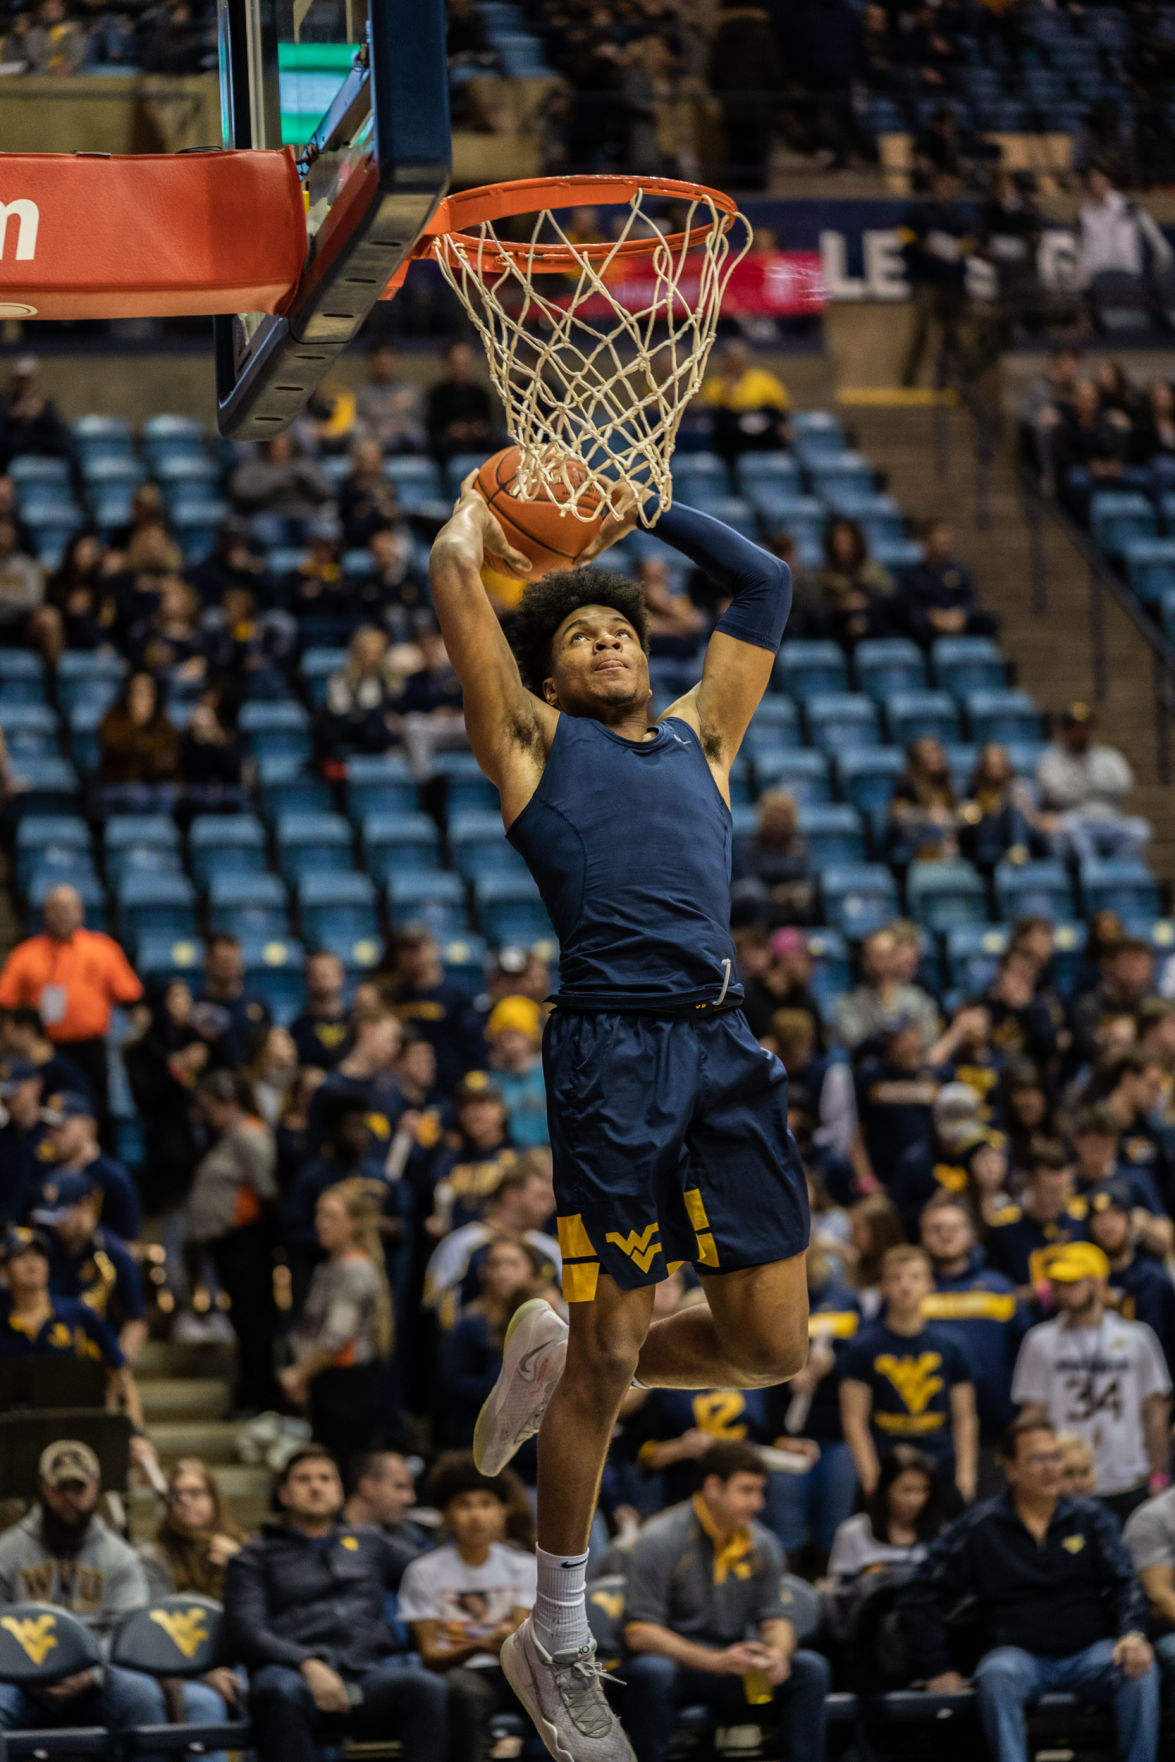 Miles McBride goes up for a dunk during warm ups before taking on Kansas State at the WVU Coliseum on Feb. 1, 2020.